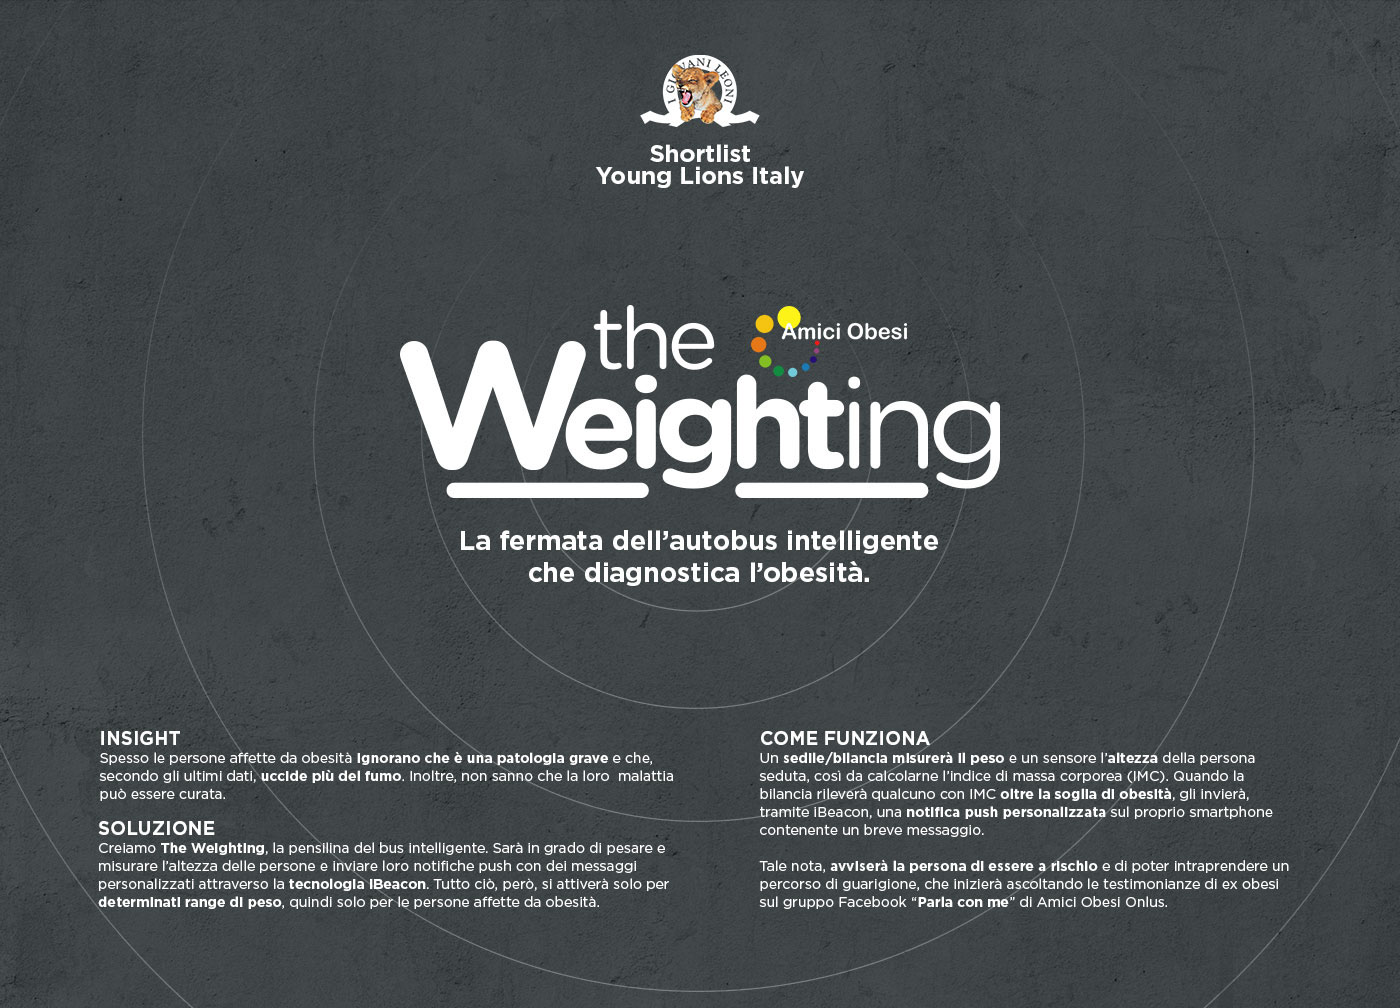 Young lions giovani leoni Cannes adci Art Directors Club Shortlist bus stop fat weight Cannes lions